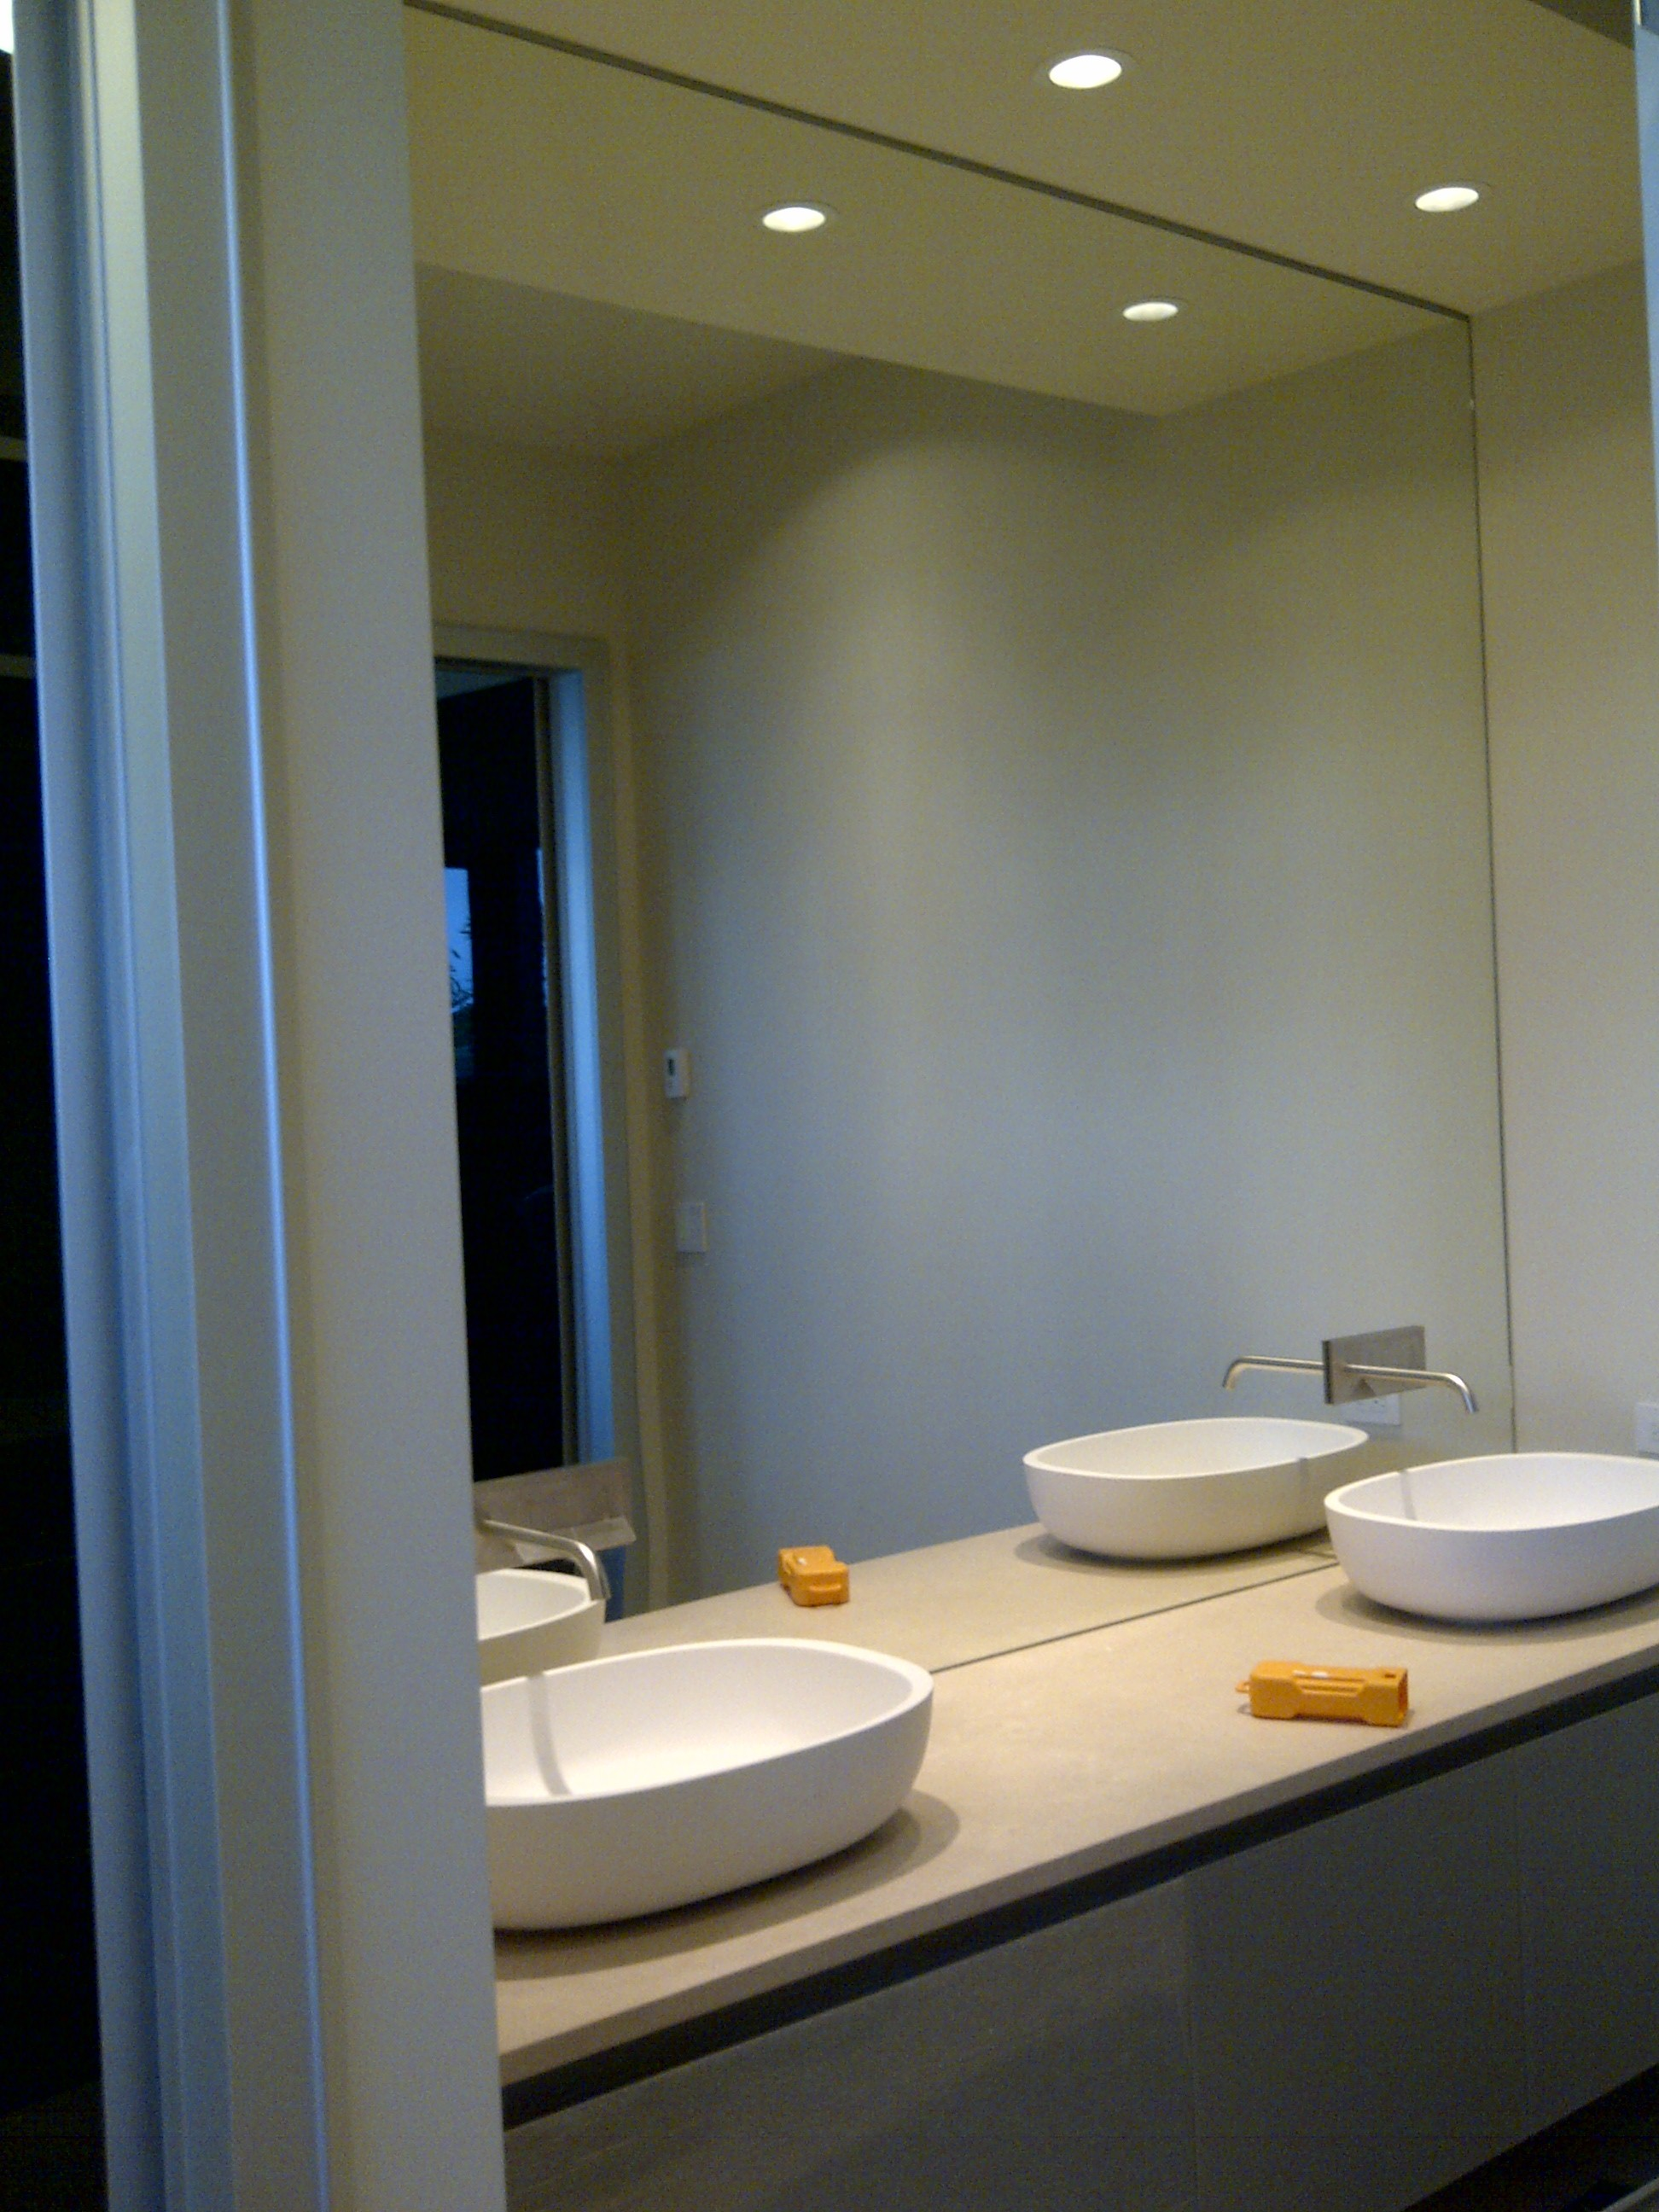 mirrors repair replace and install in vancouver bc 15972